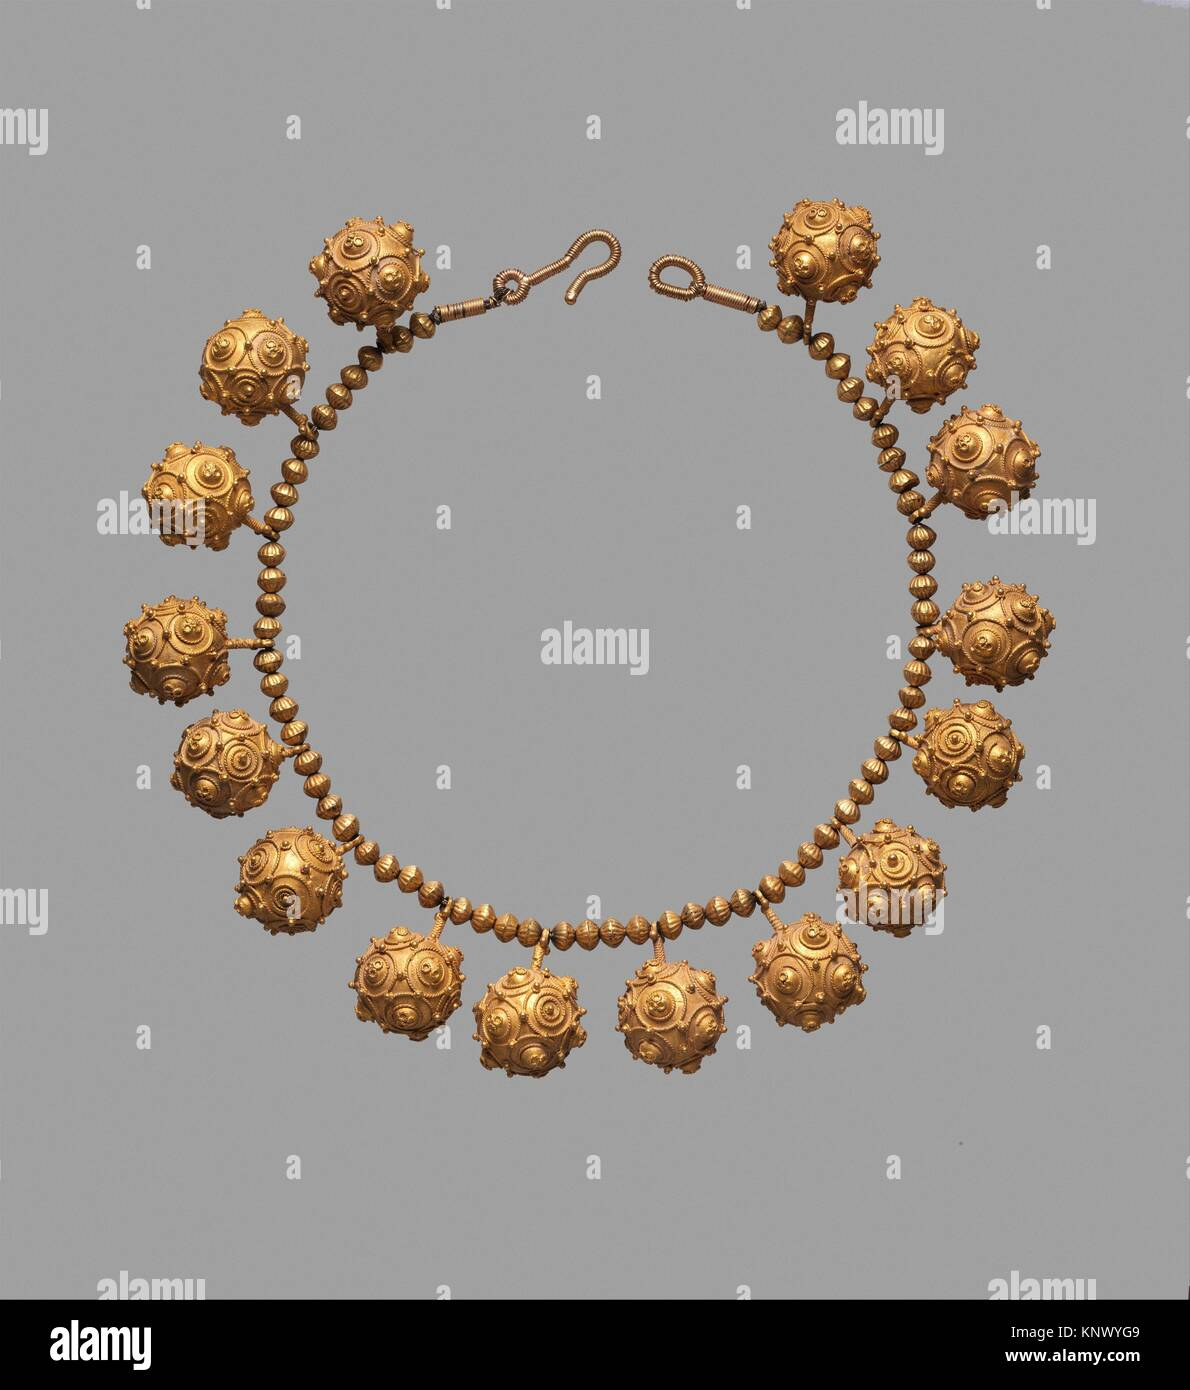 Necklace. Date: 11th century; Geography: Country of Origin Iran; Medium: Gold; granulation; Dimensions: H. 16 in. Stock Photo